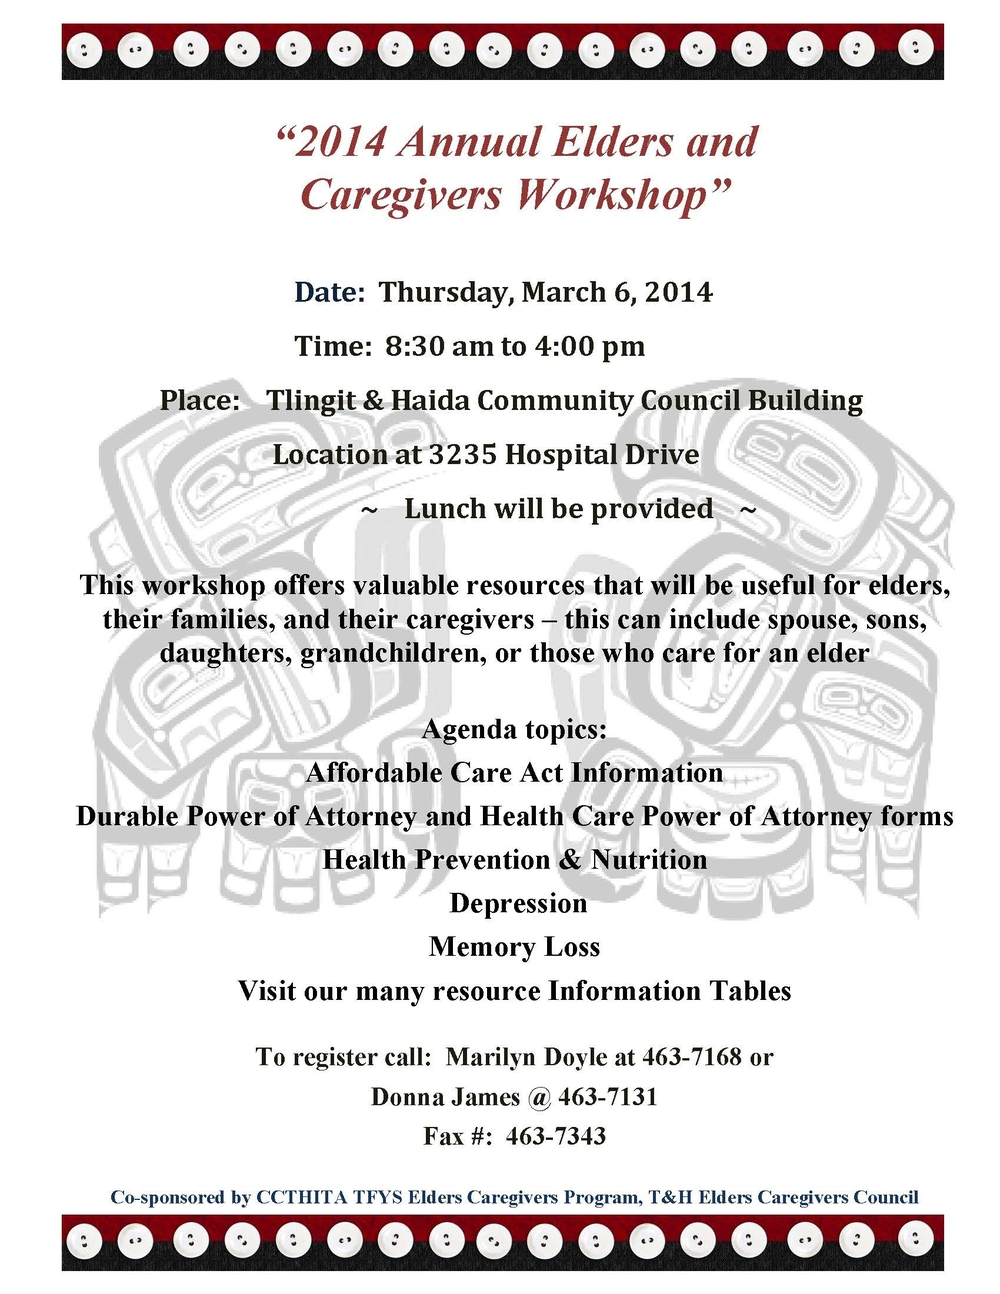 Caregivers Workshop Flyer 2-20-14.JPG